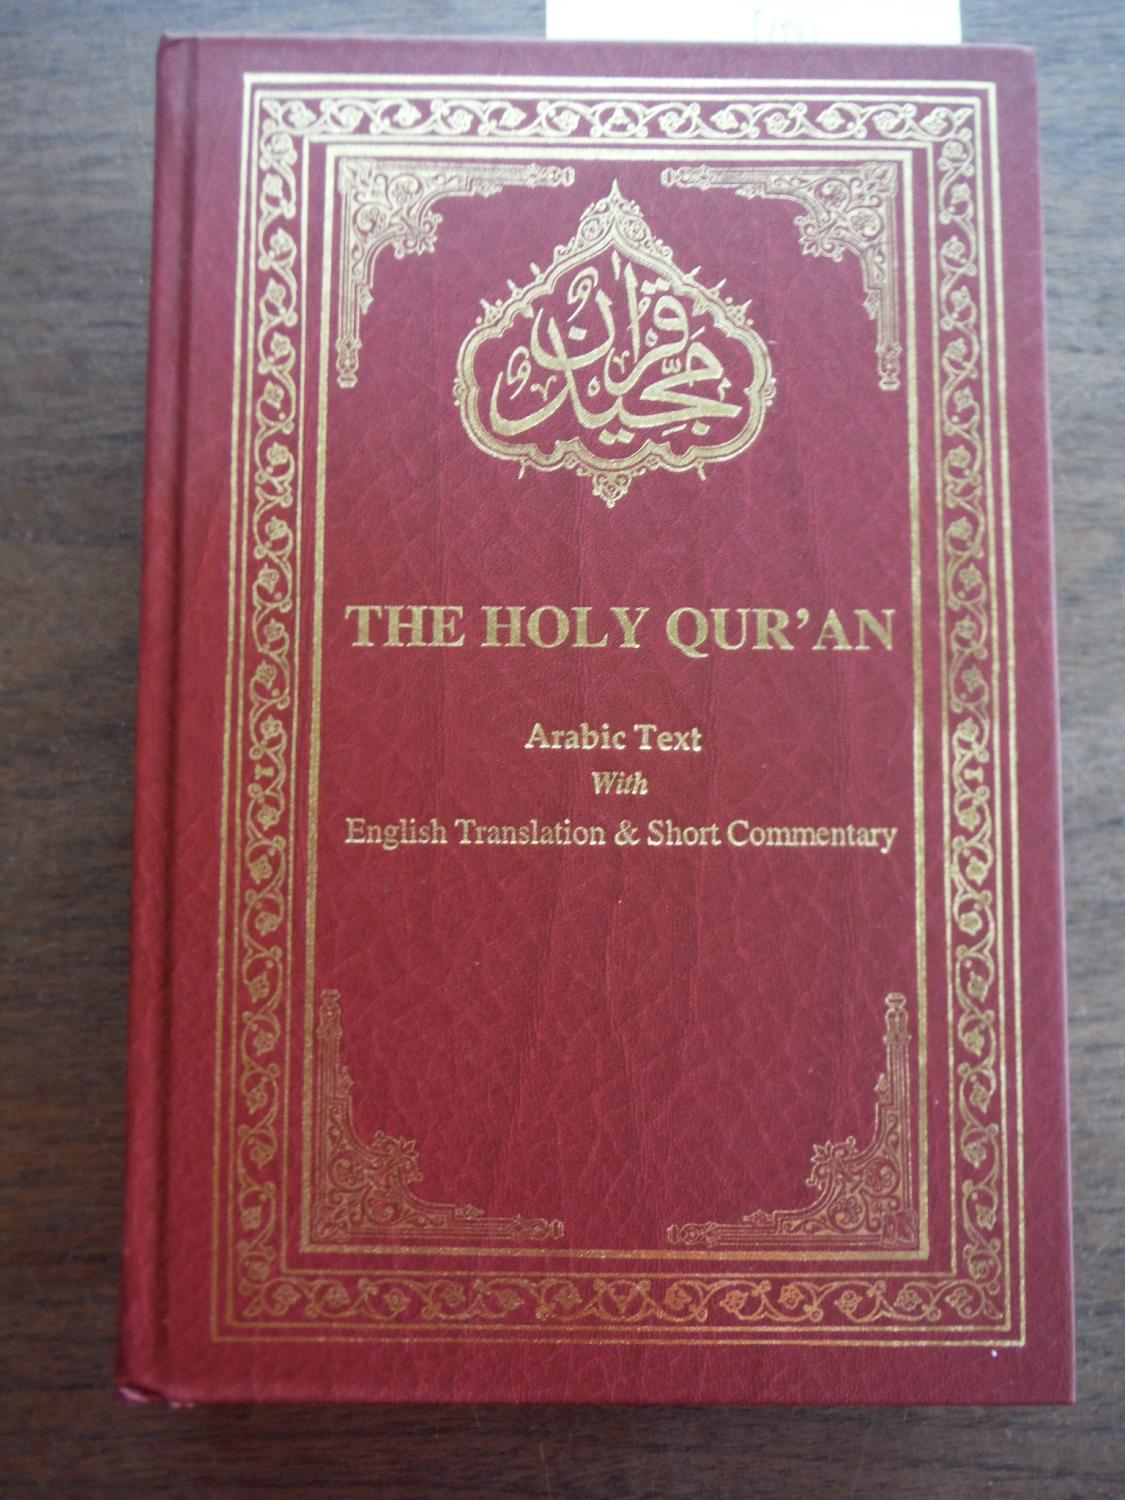 The Holy Quran: Arabic Text with English